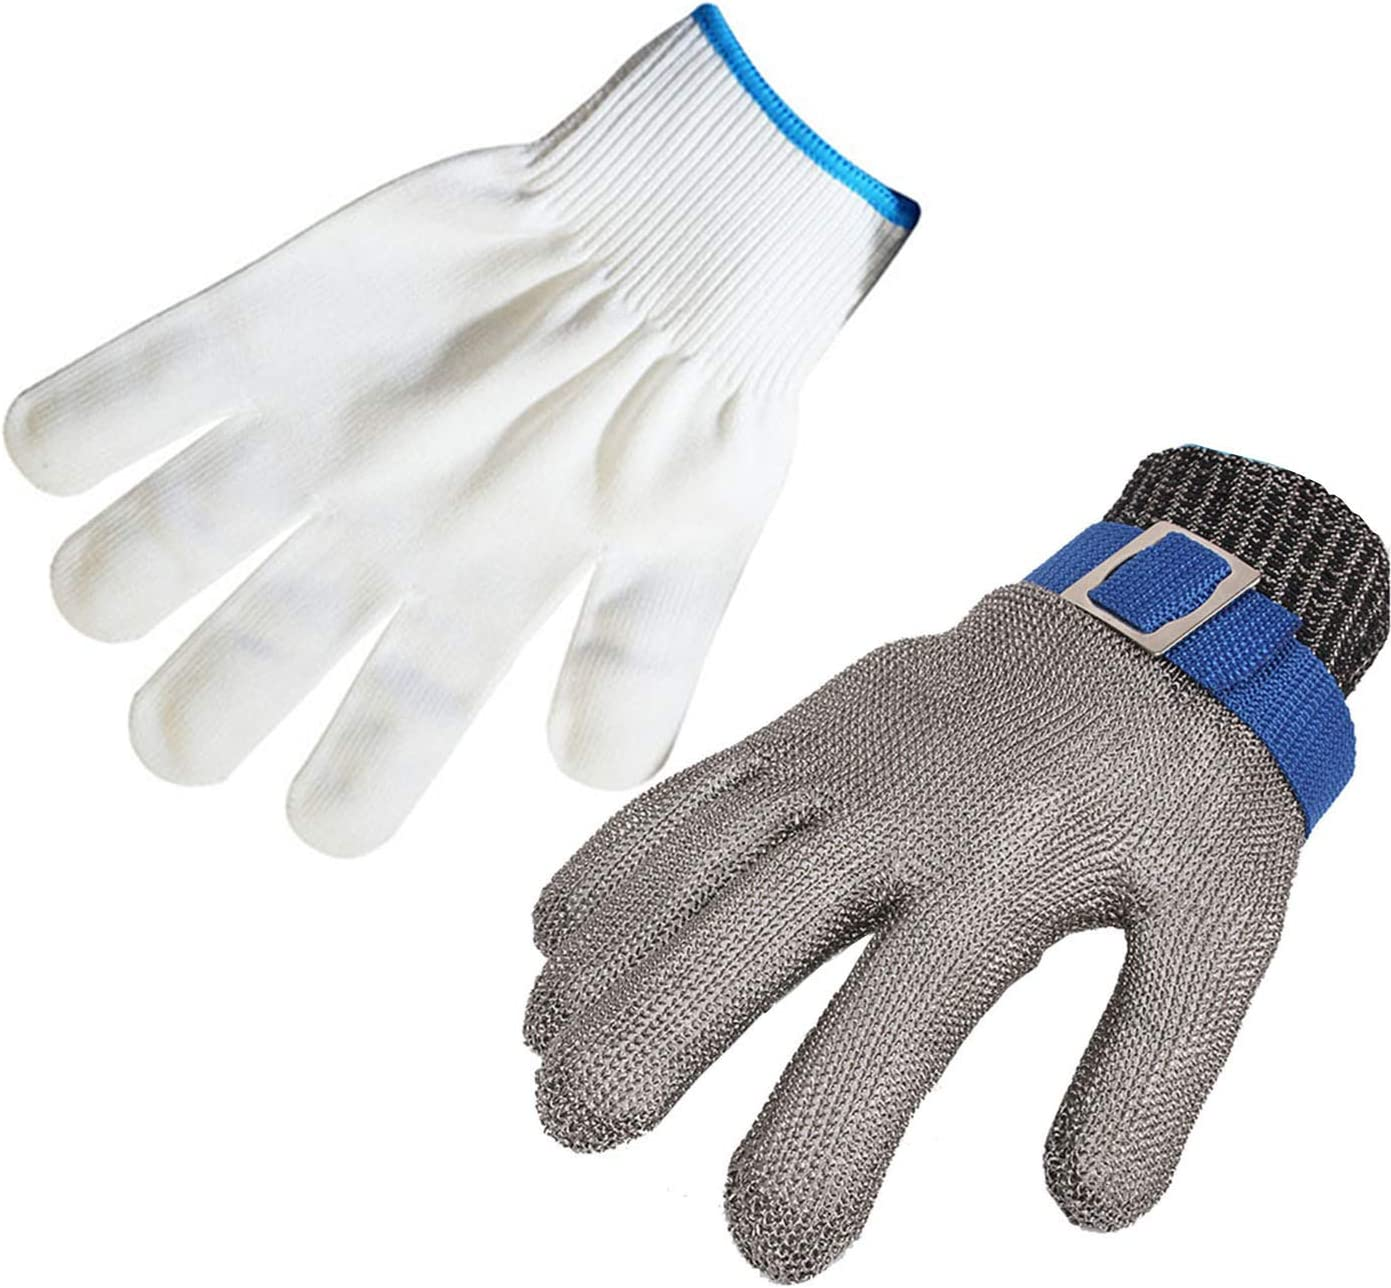 ThreeH Protective Gloves for Cutting Chopping Slicing Meat Processing Stainless Steel Cut Resistant Gloves GL09 L(One piece)